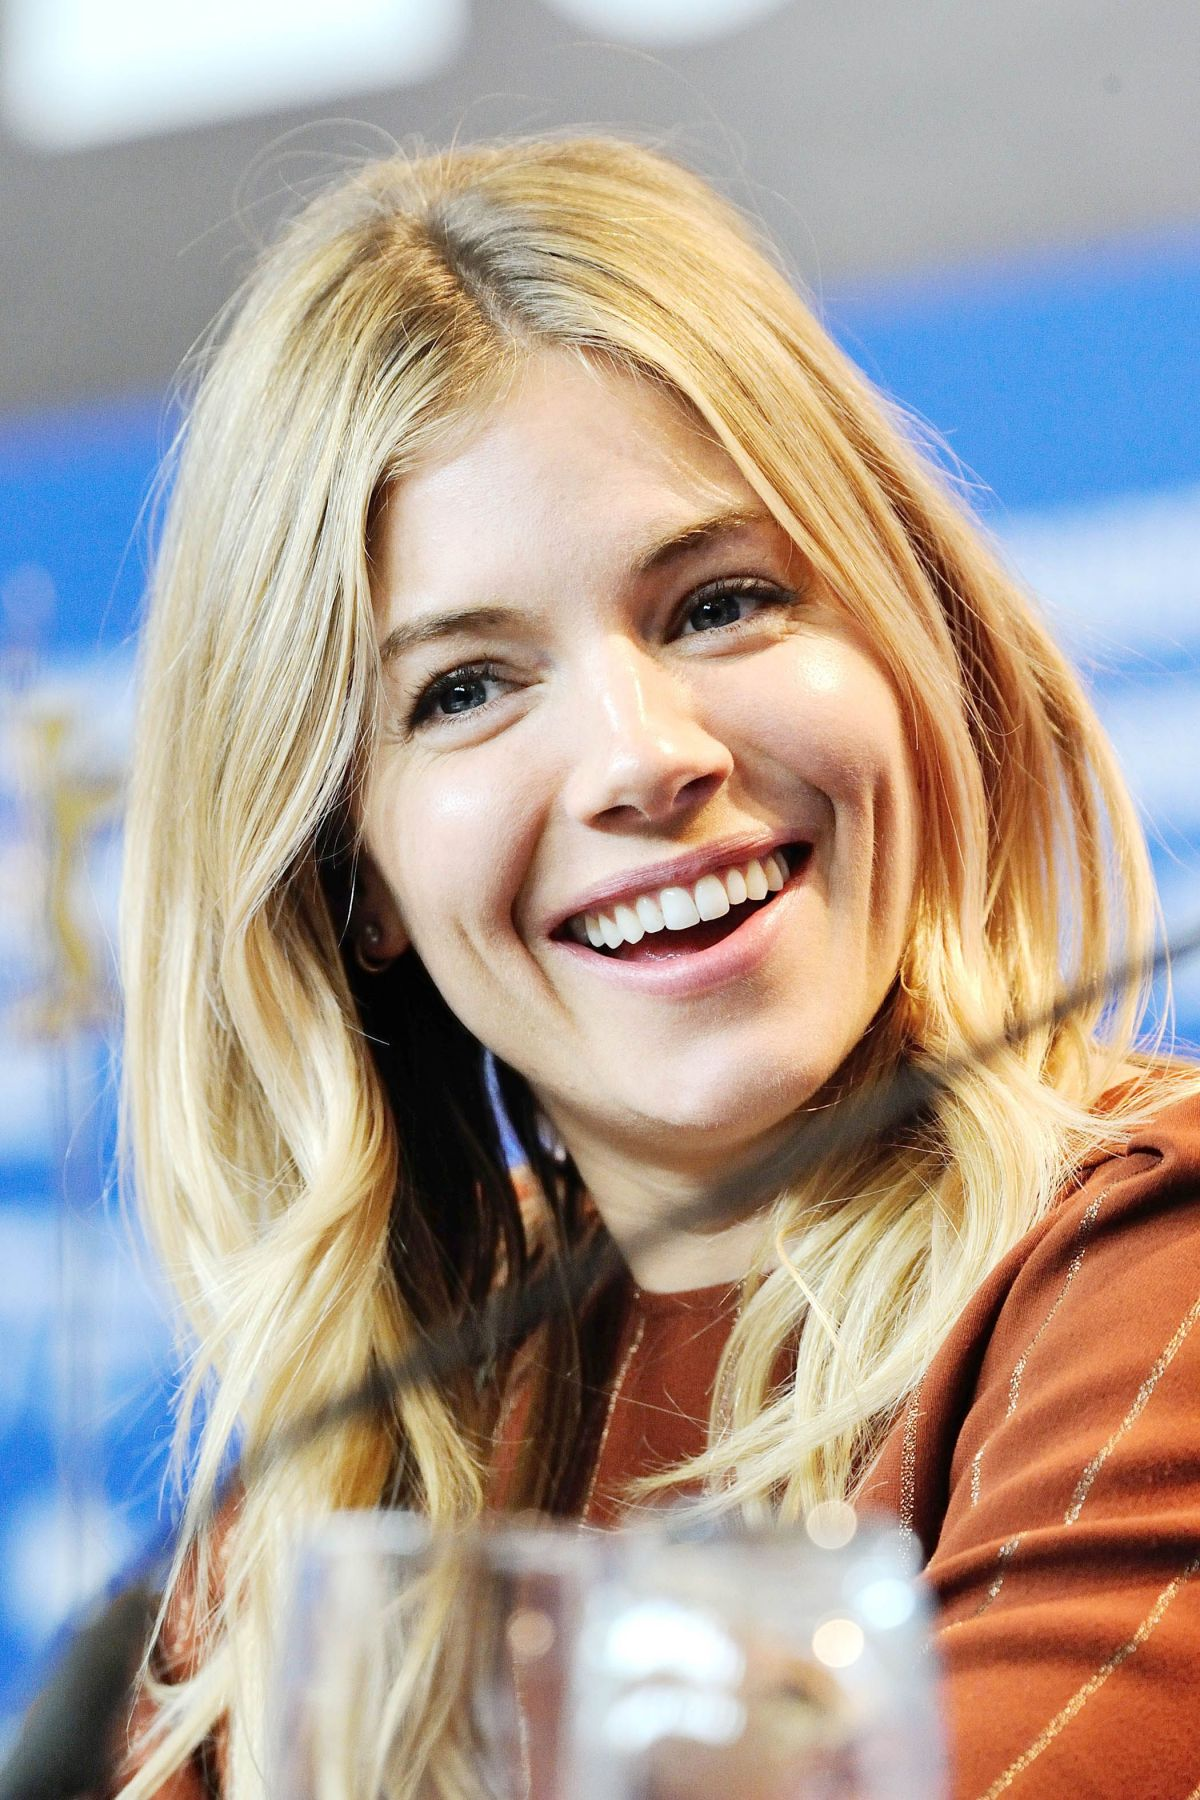 Sienna Miller At The Lost City Of Z Press Conference At